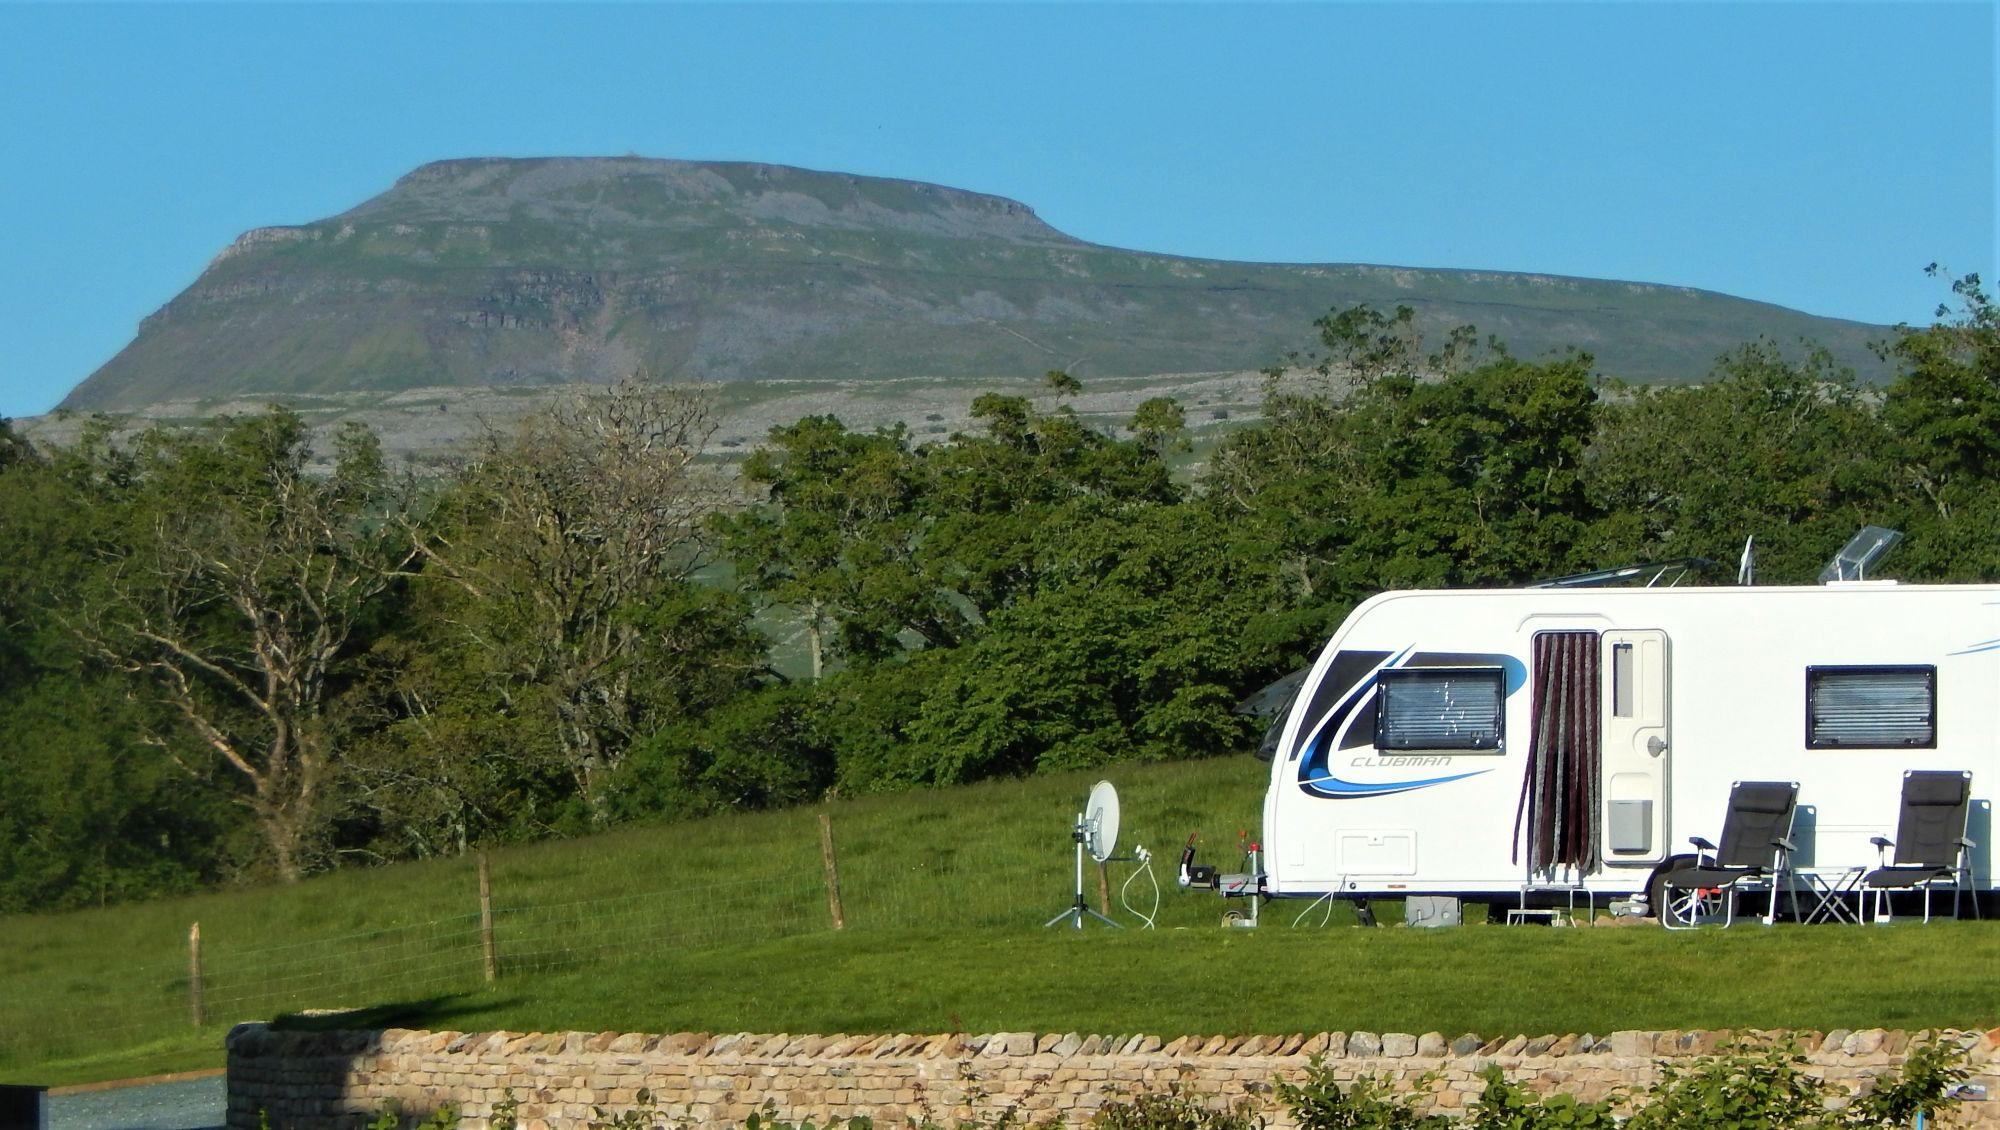 Ingleborough and one of the Serviced Pitches